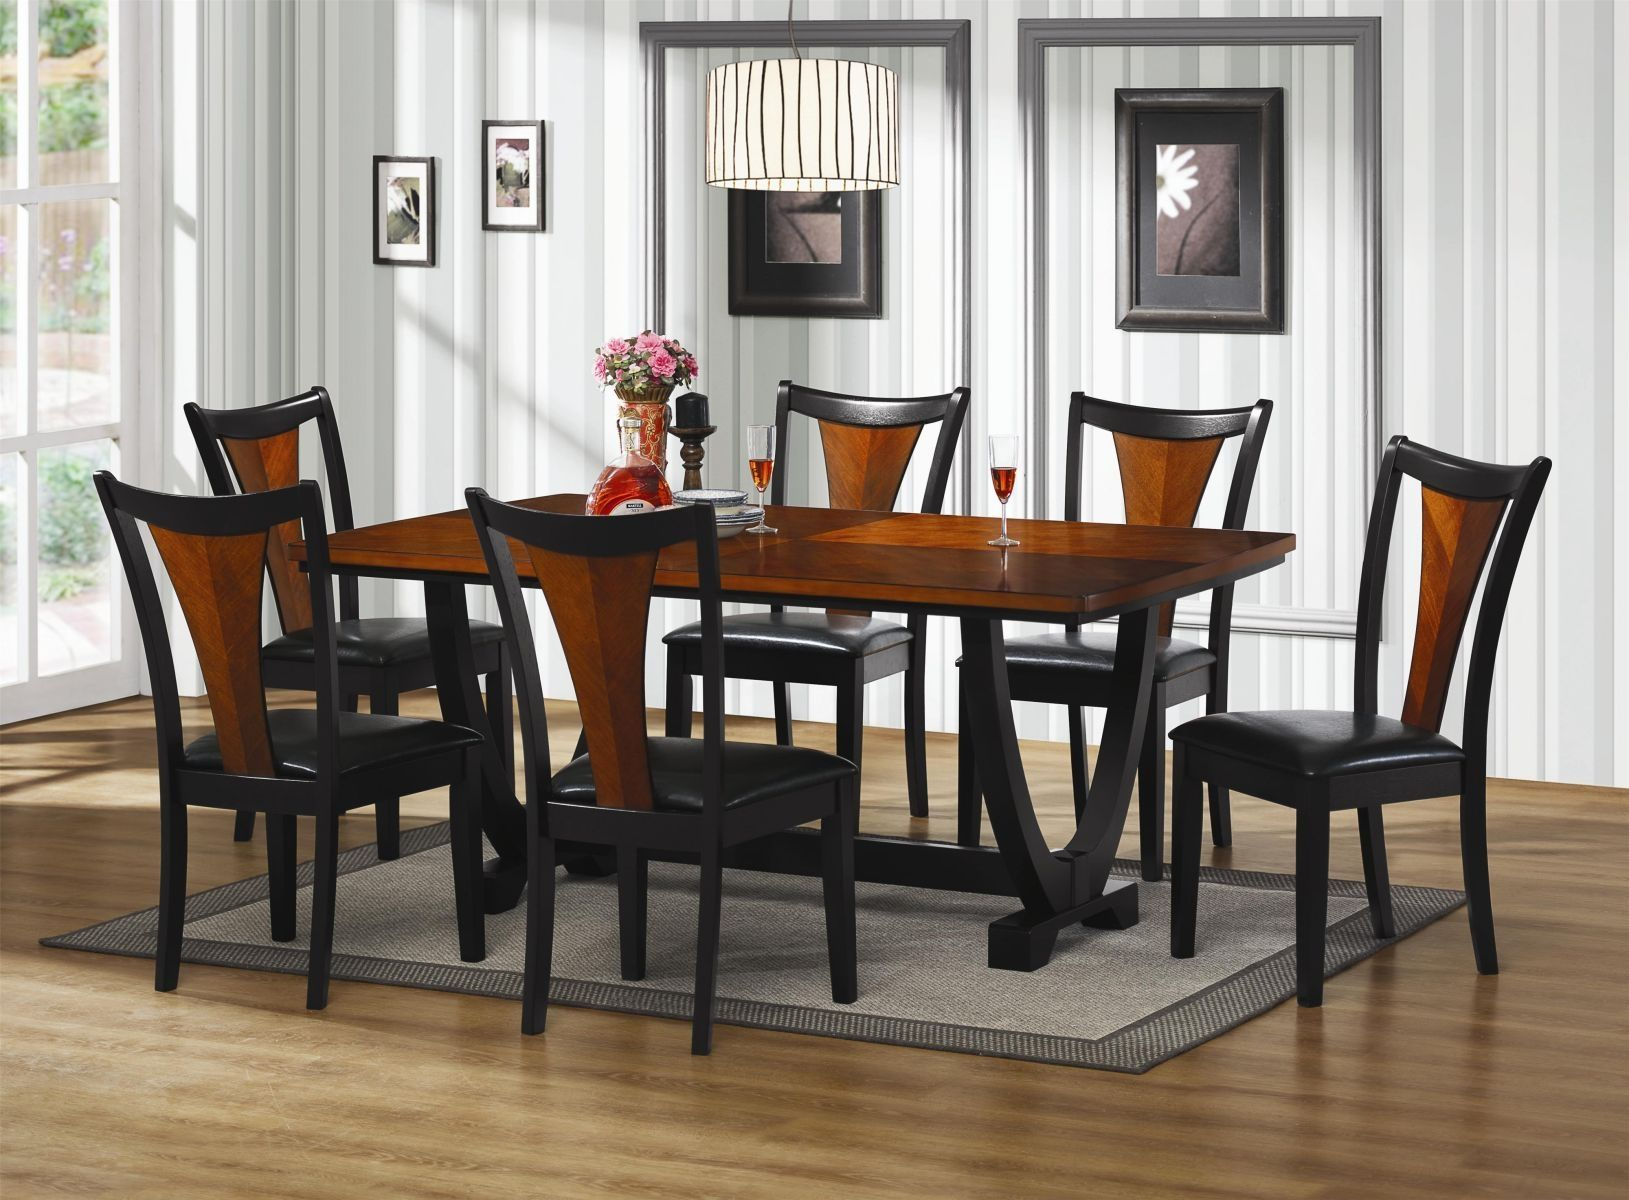 Formal dining room design ideas  Kitchen Table Sets Long Island  navigatorspbfo